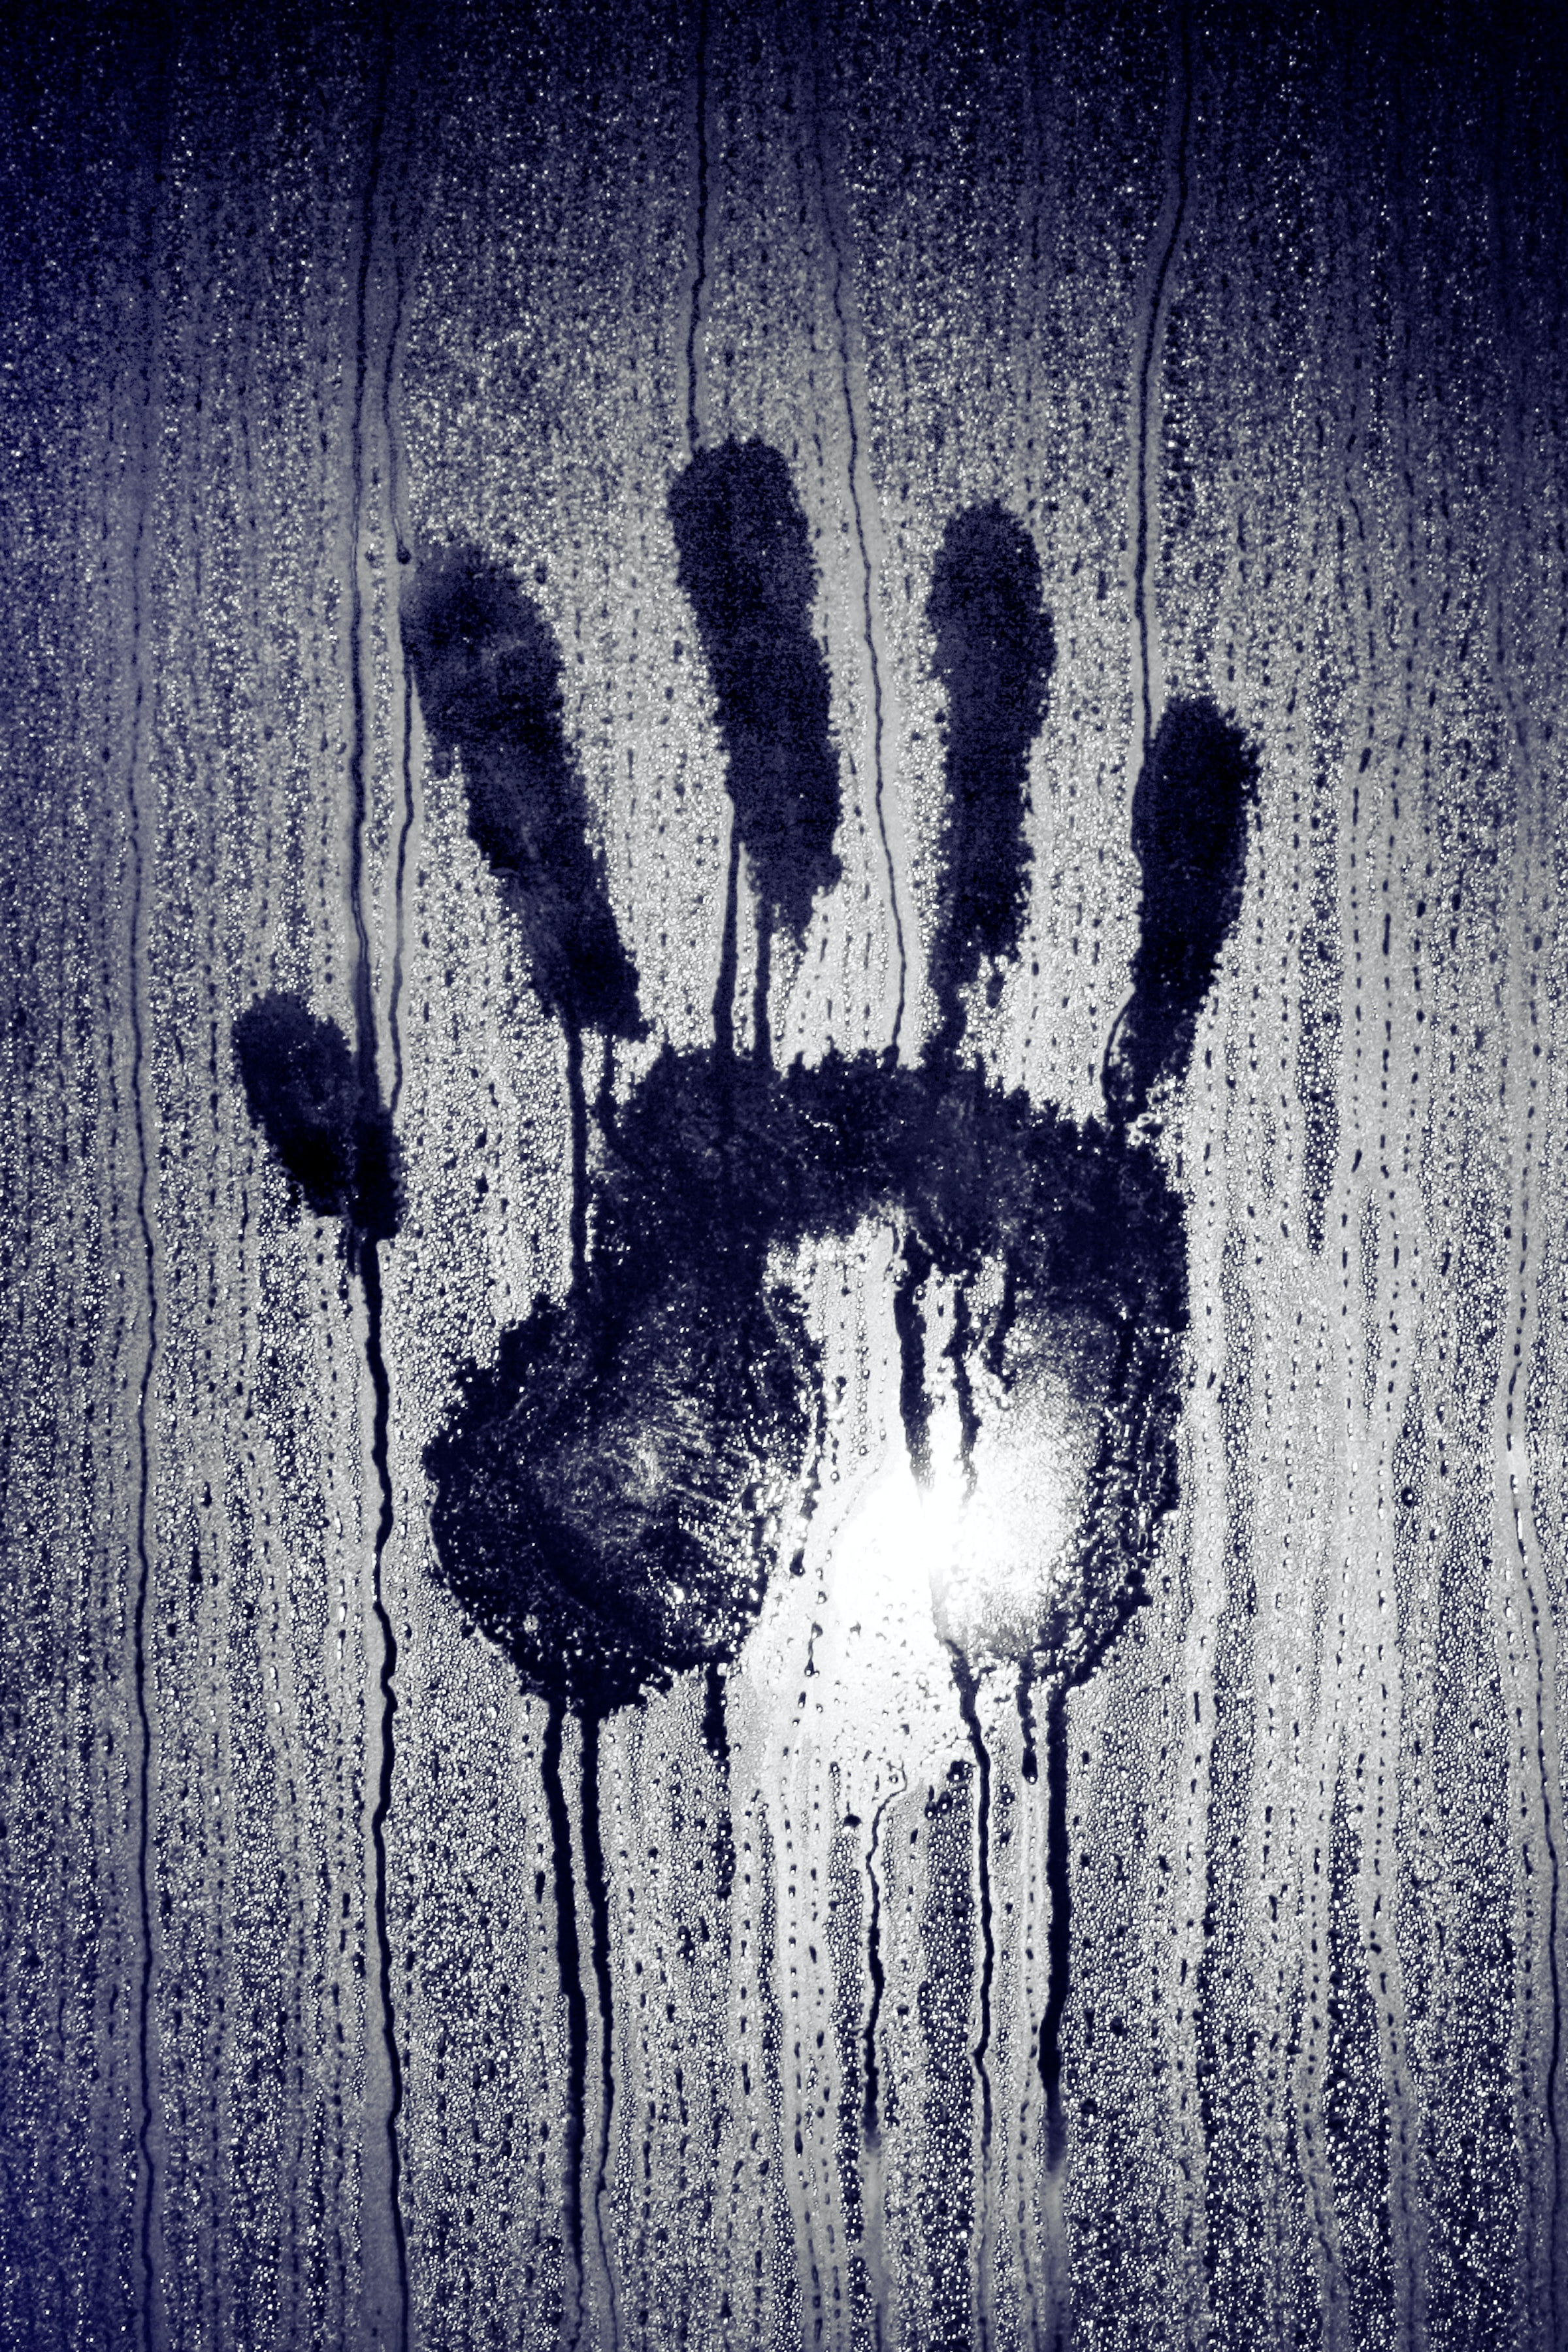 person's hand print on moistened glass